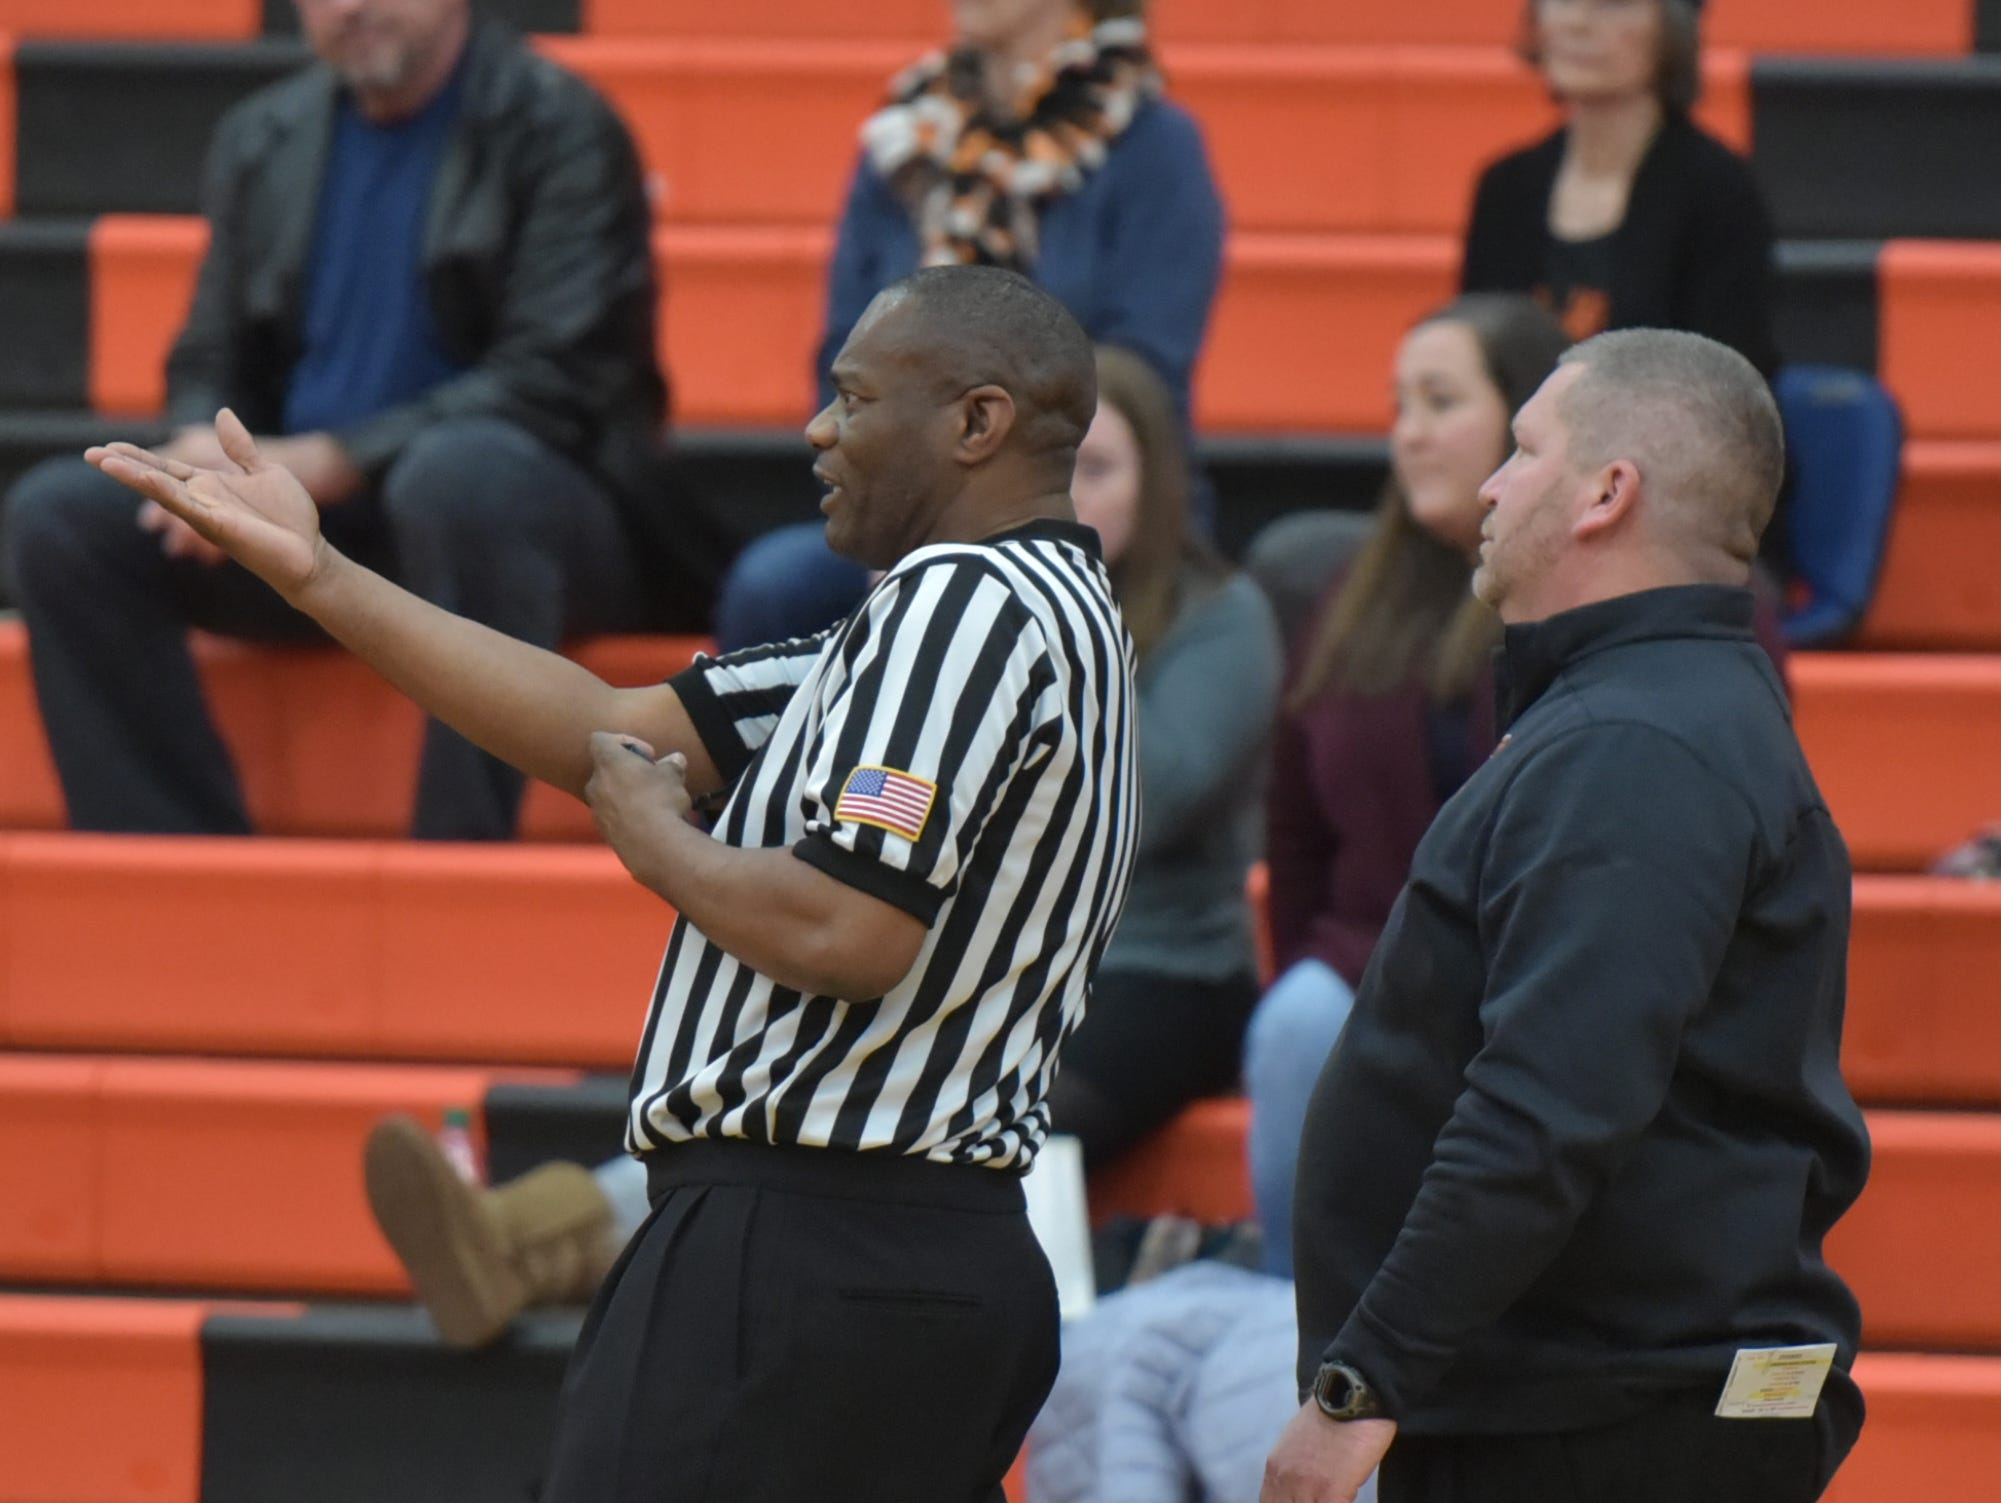 Brighton head coach Mike Griest, right, gets an explanation from a referee as to why a charge wasn't called on a Northville player during the game.